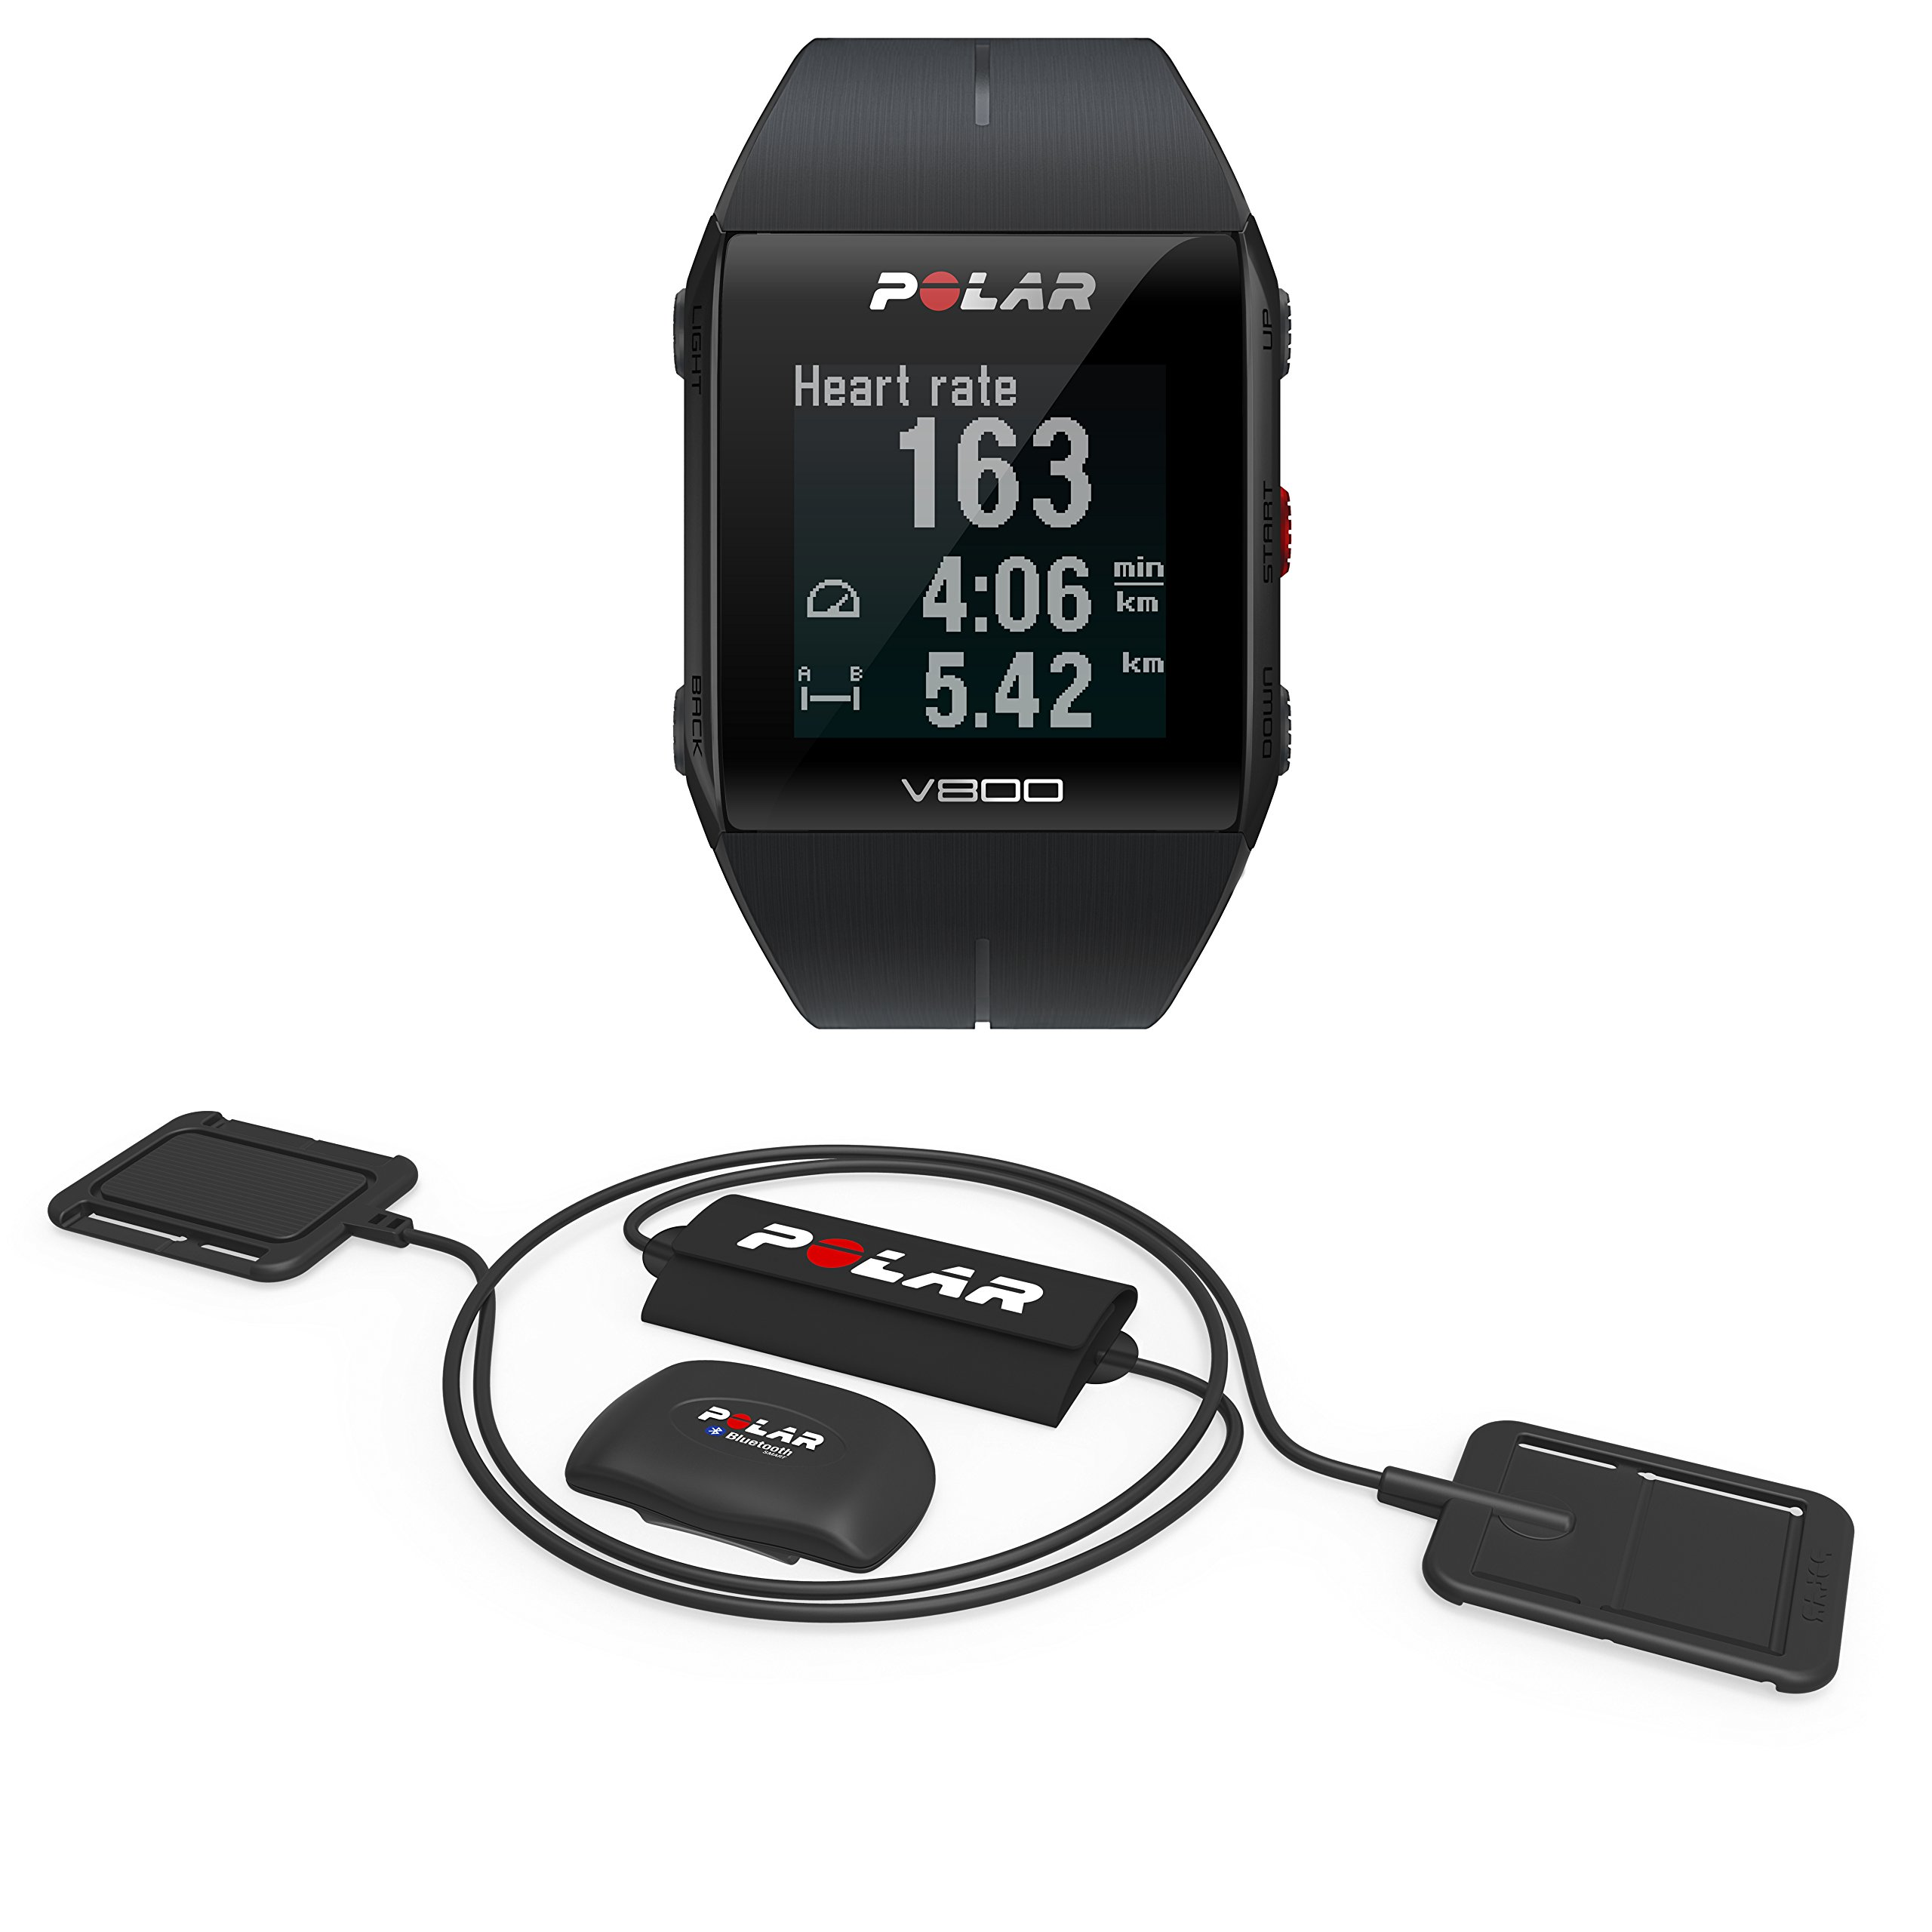 Polar Unisex Equine V800 Heart Rate Sensor for Trainers and Professional Riders, Black, One Size